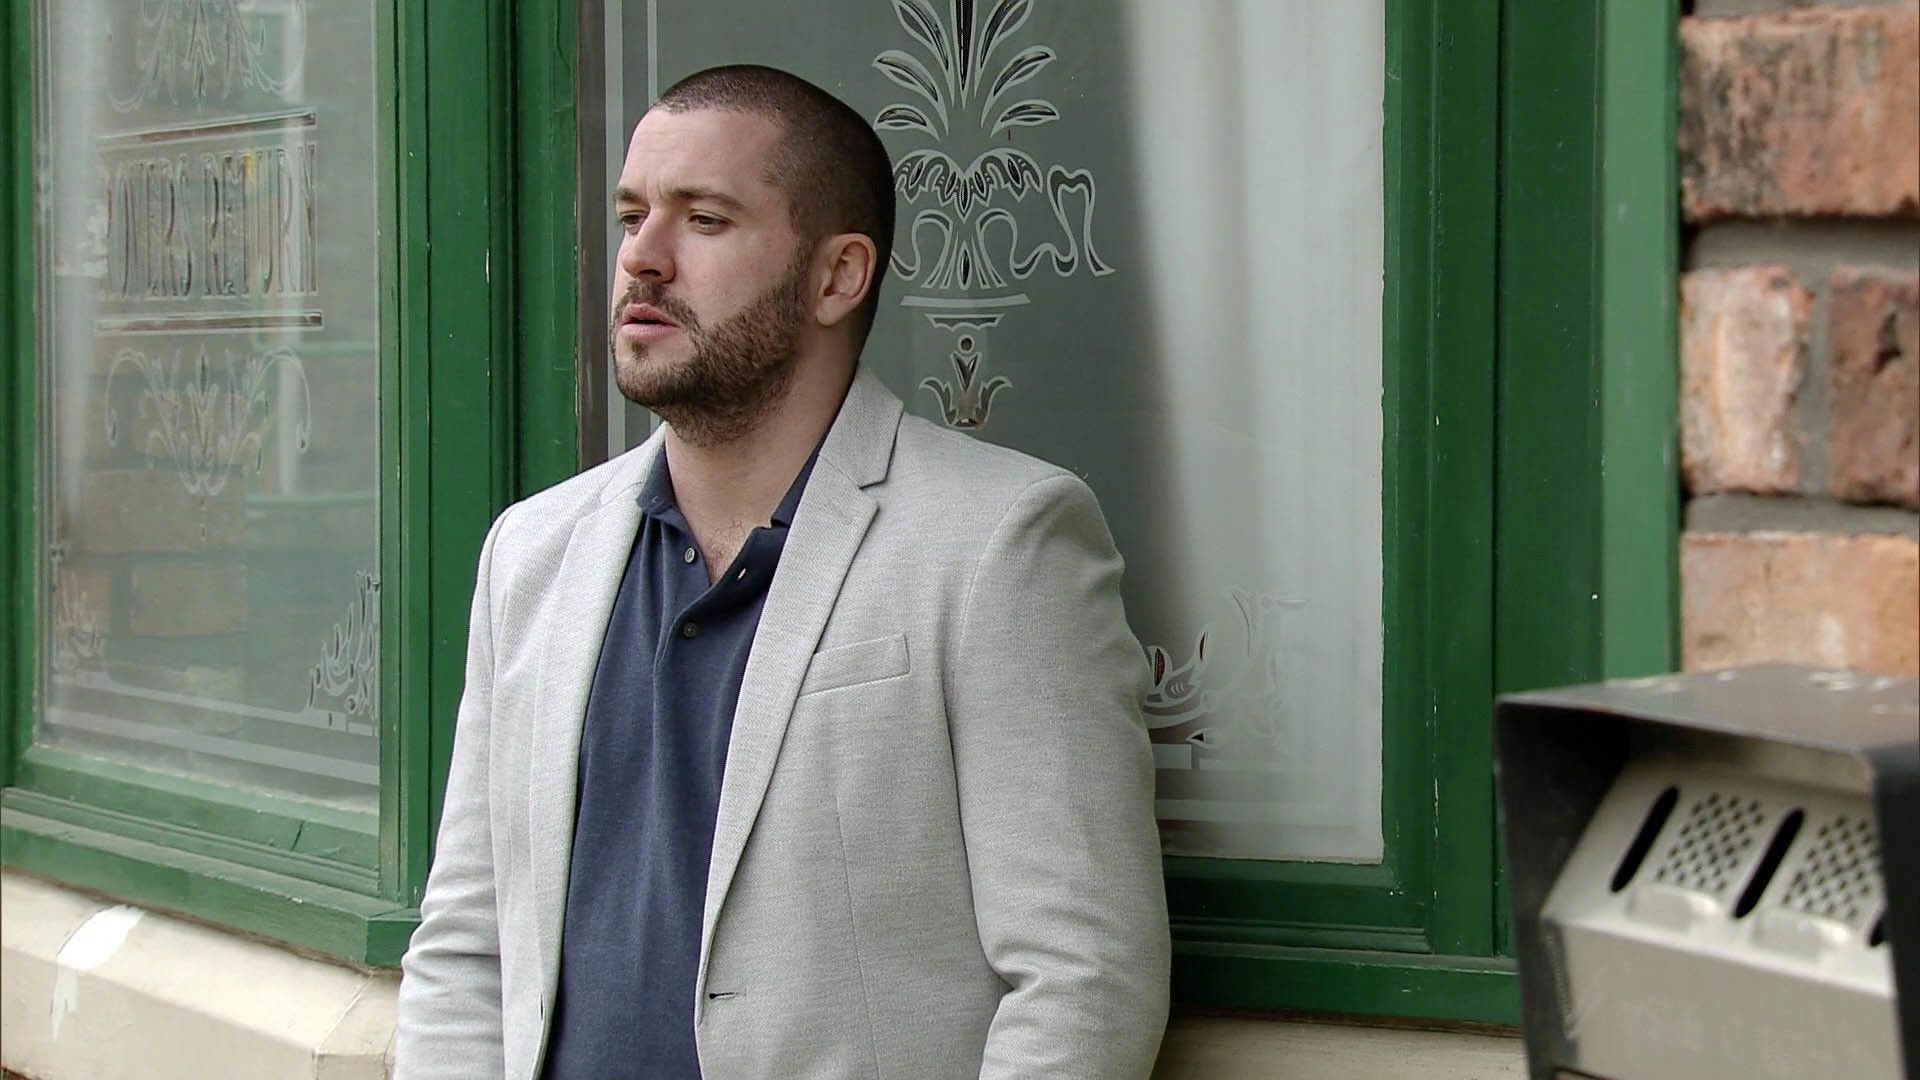 Coronation Street's Shayne Ward Has Been 'Inundated' With Messages About Suicide Storyline